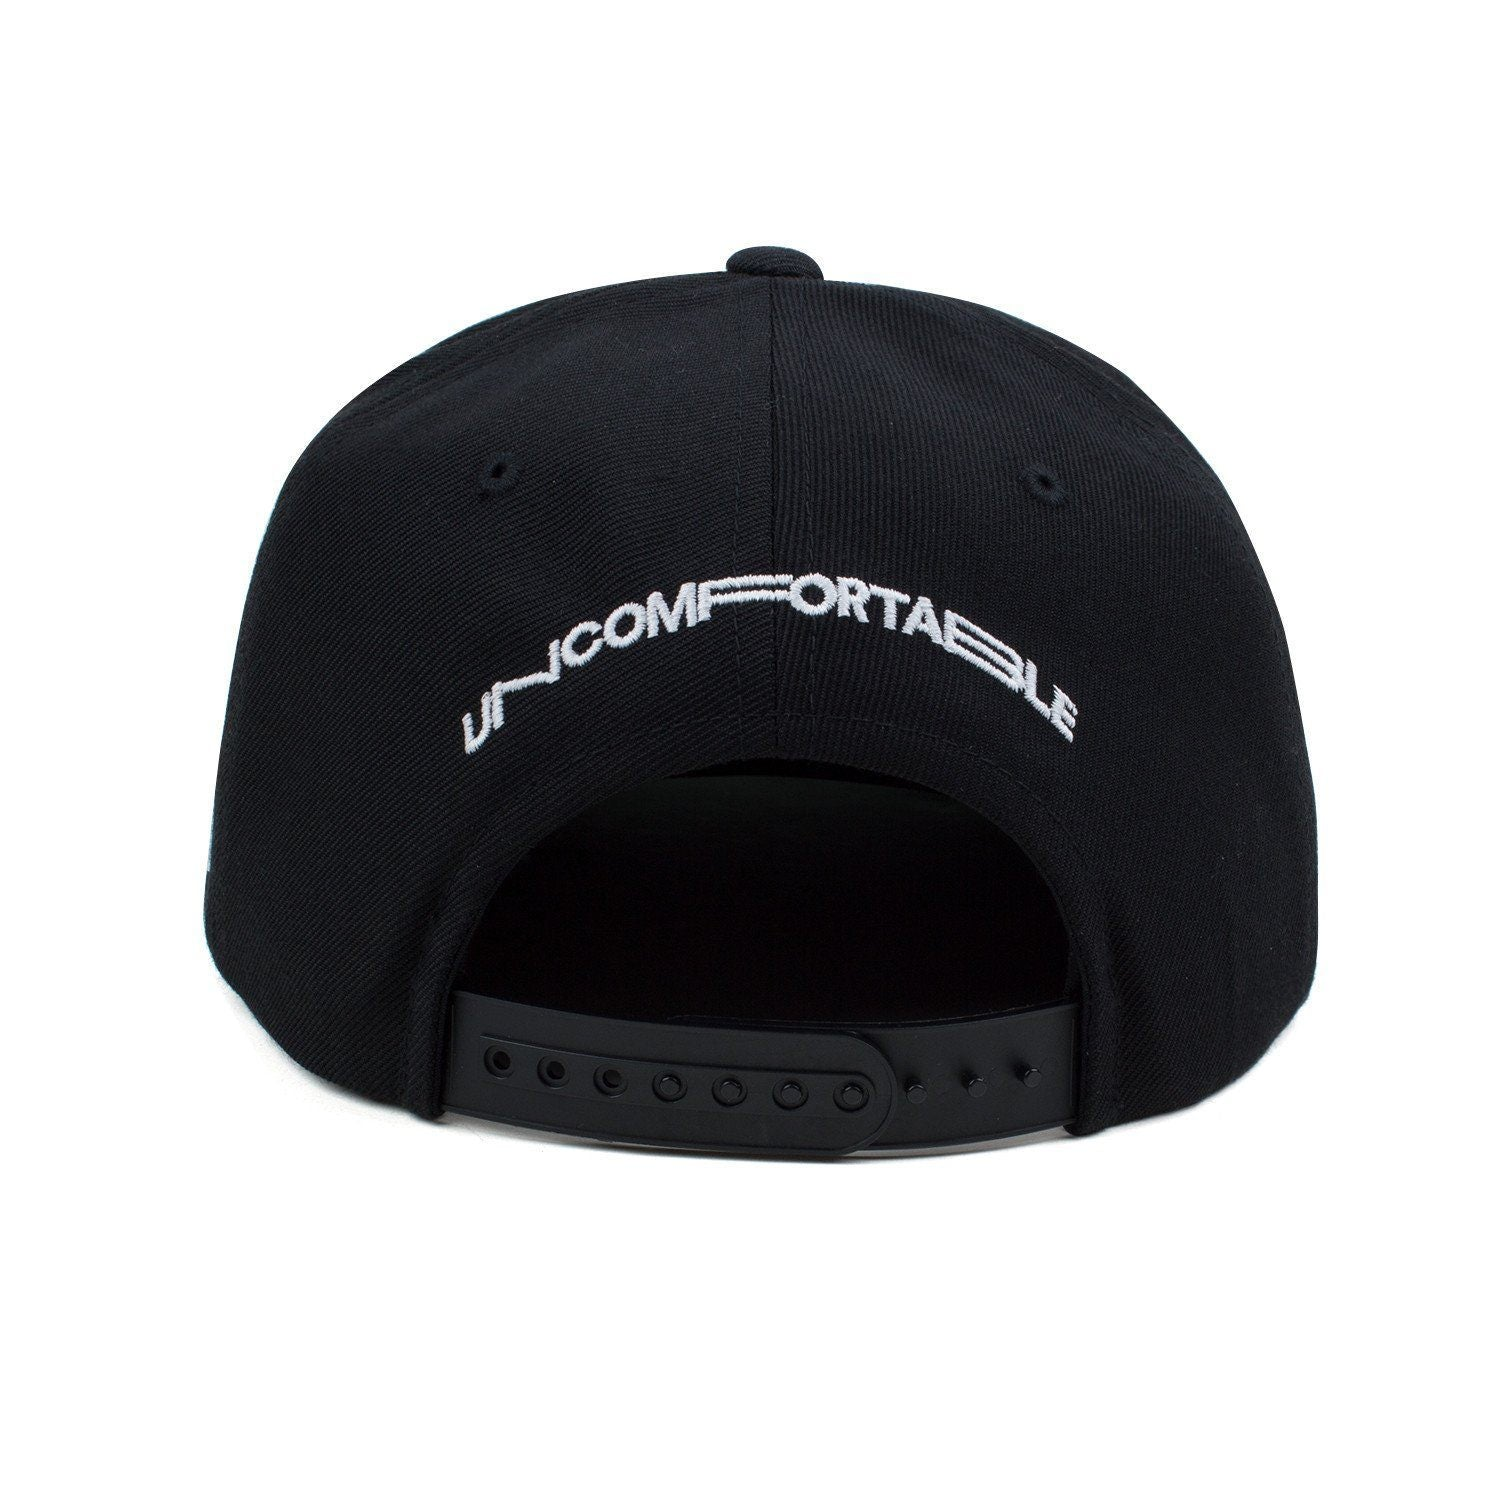 Andy Mineo 'Uncomfortable' Snapback